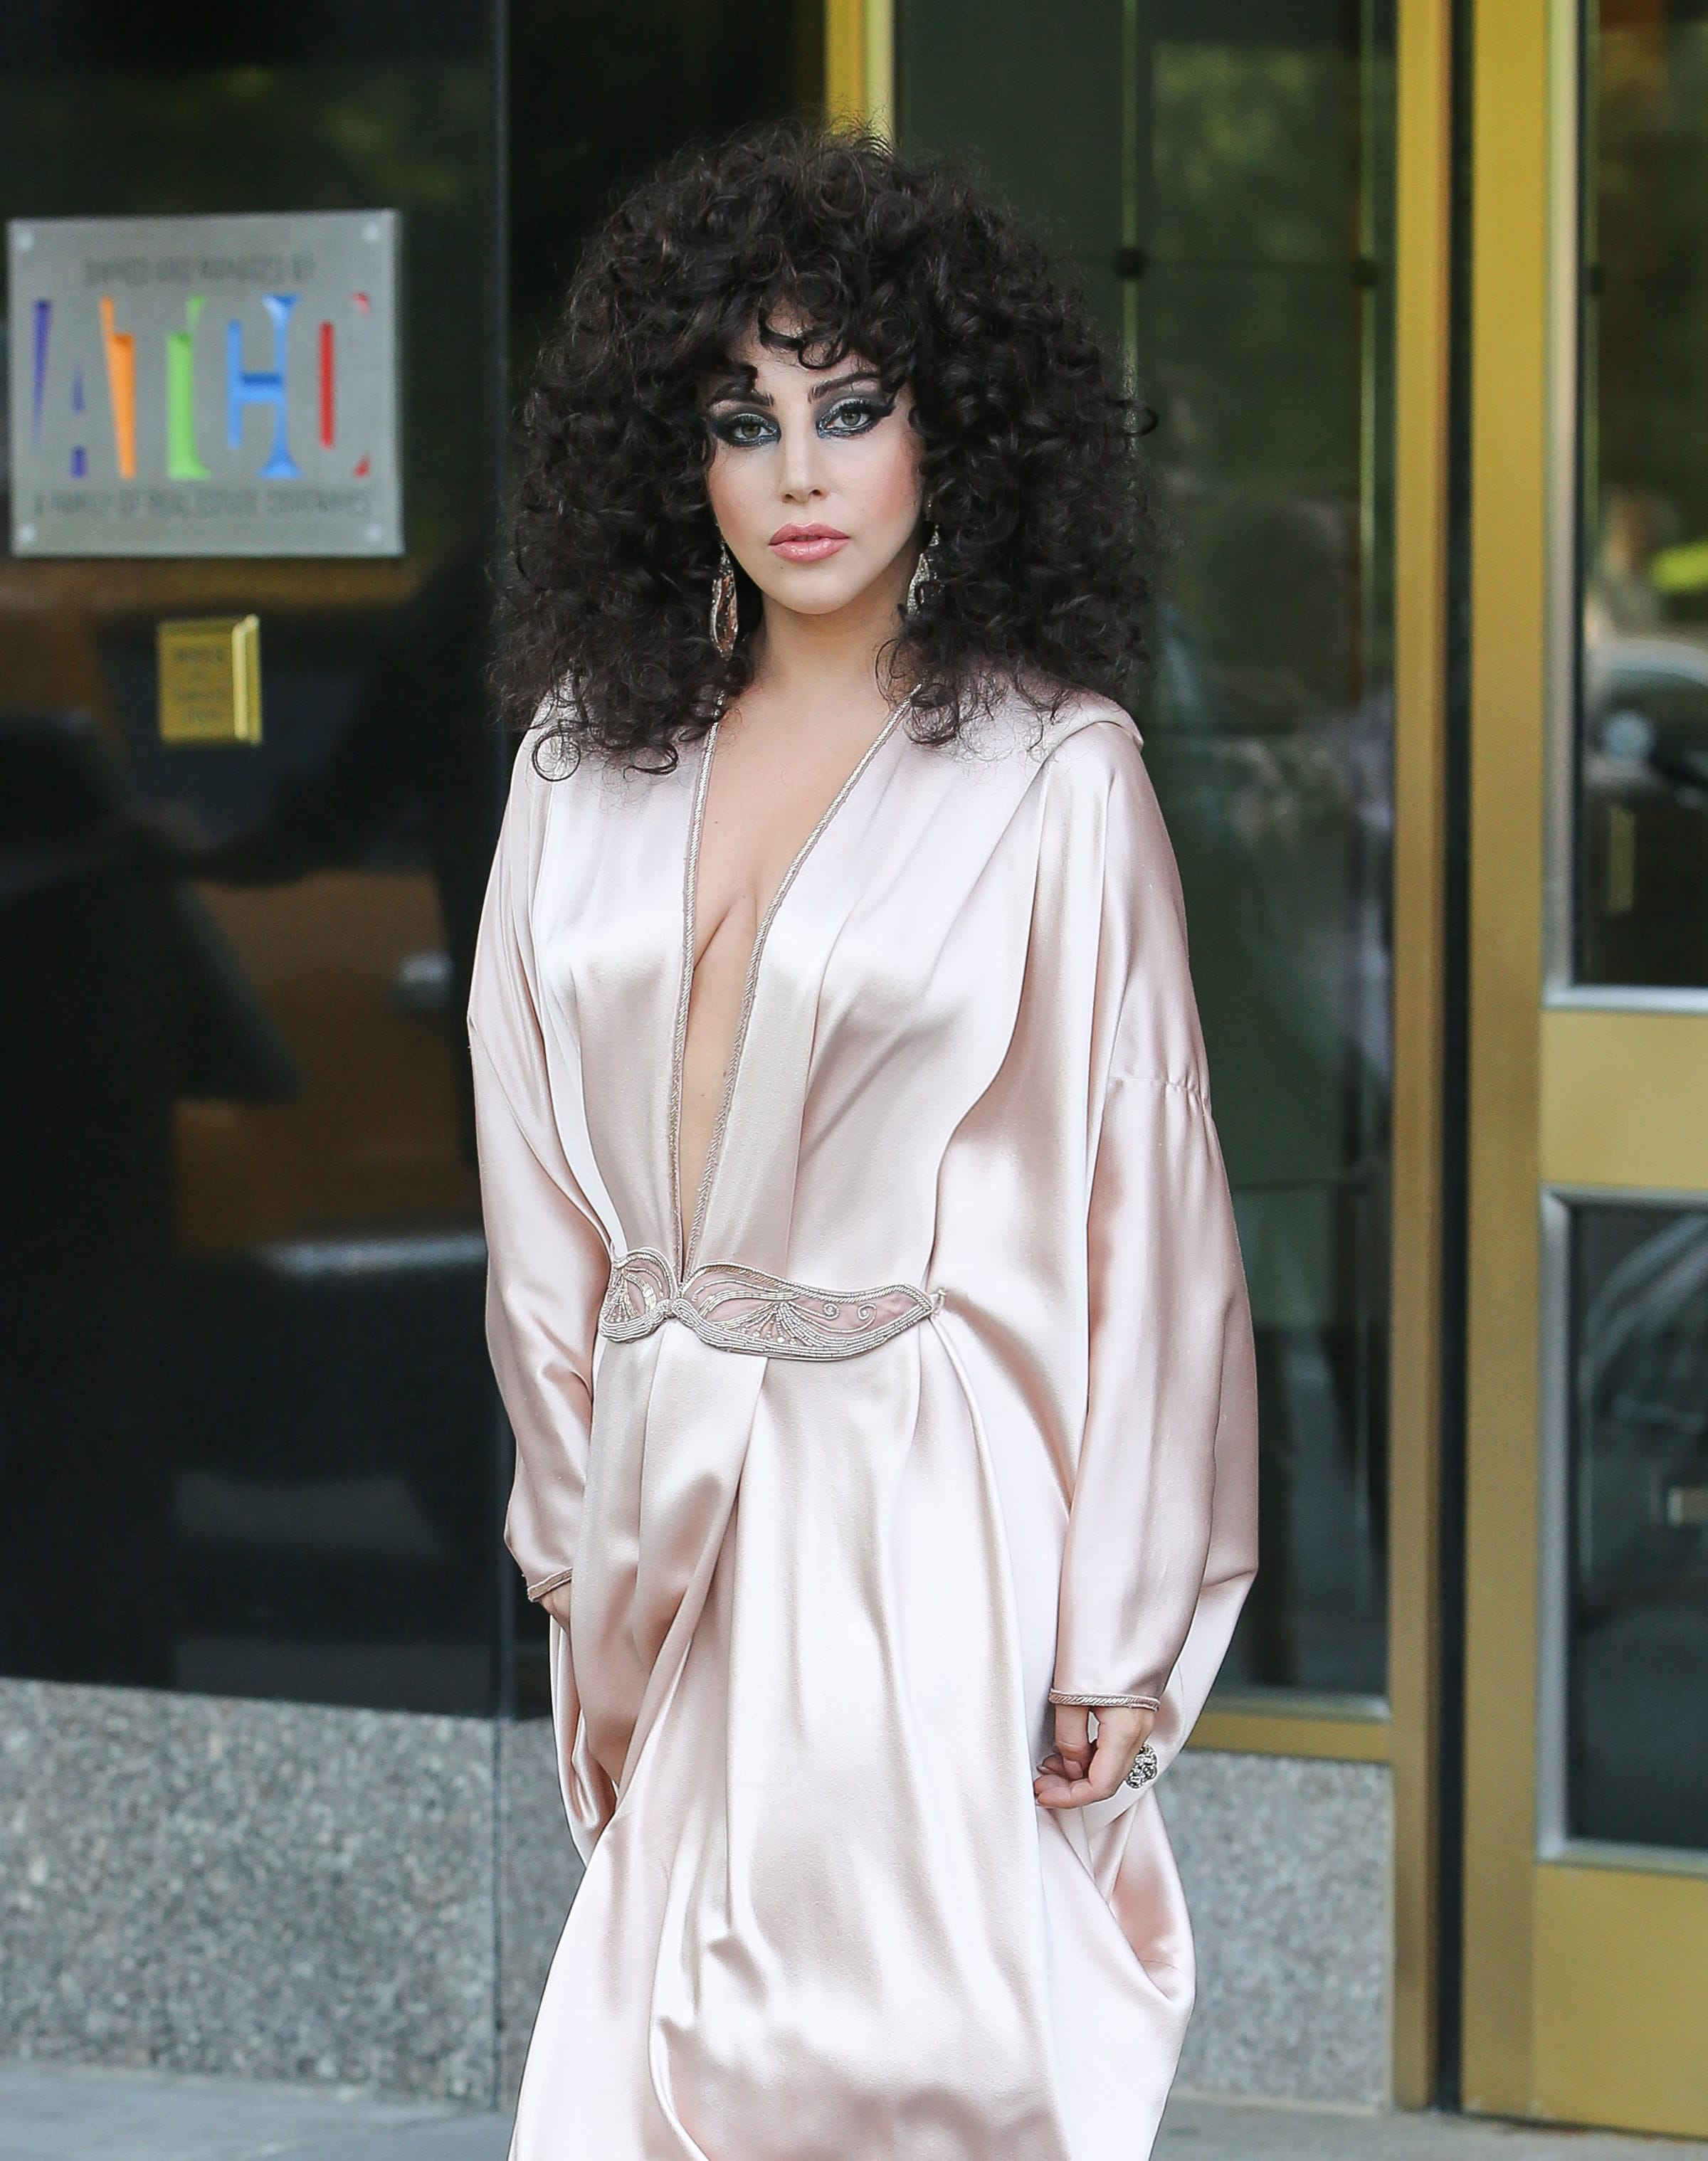 Lady Gaga spotted wearing a long pink dress while leaving her apartment building in New York City